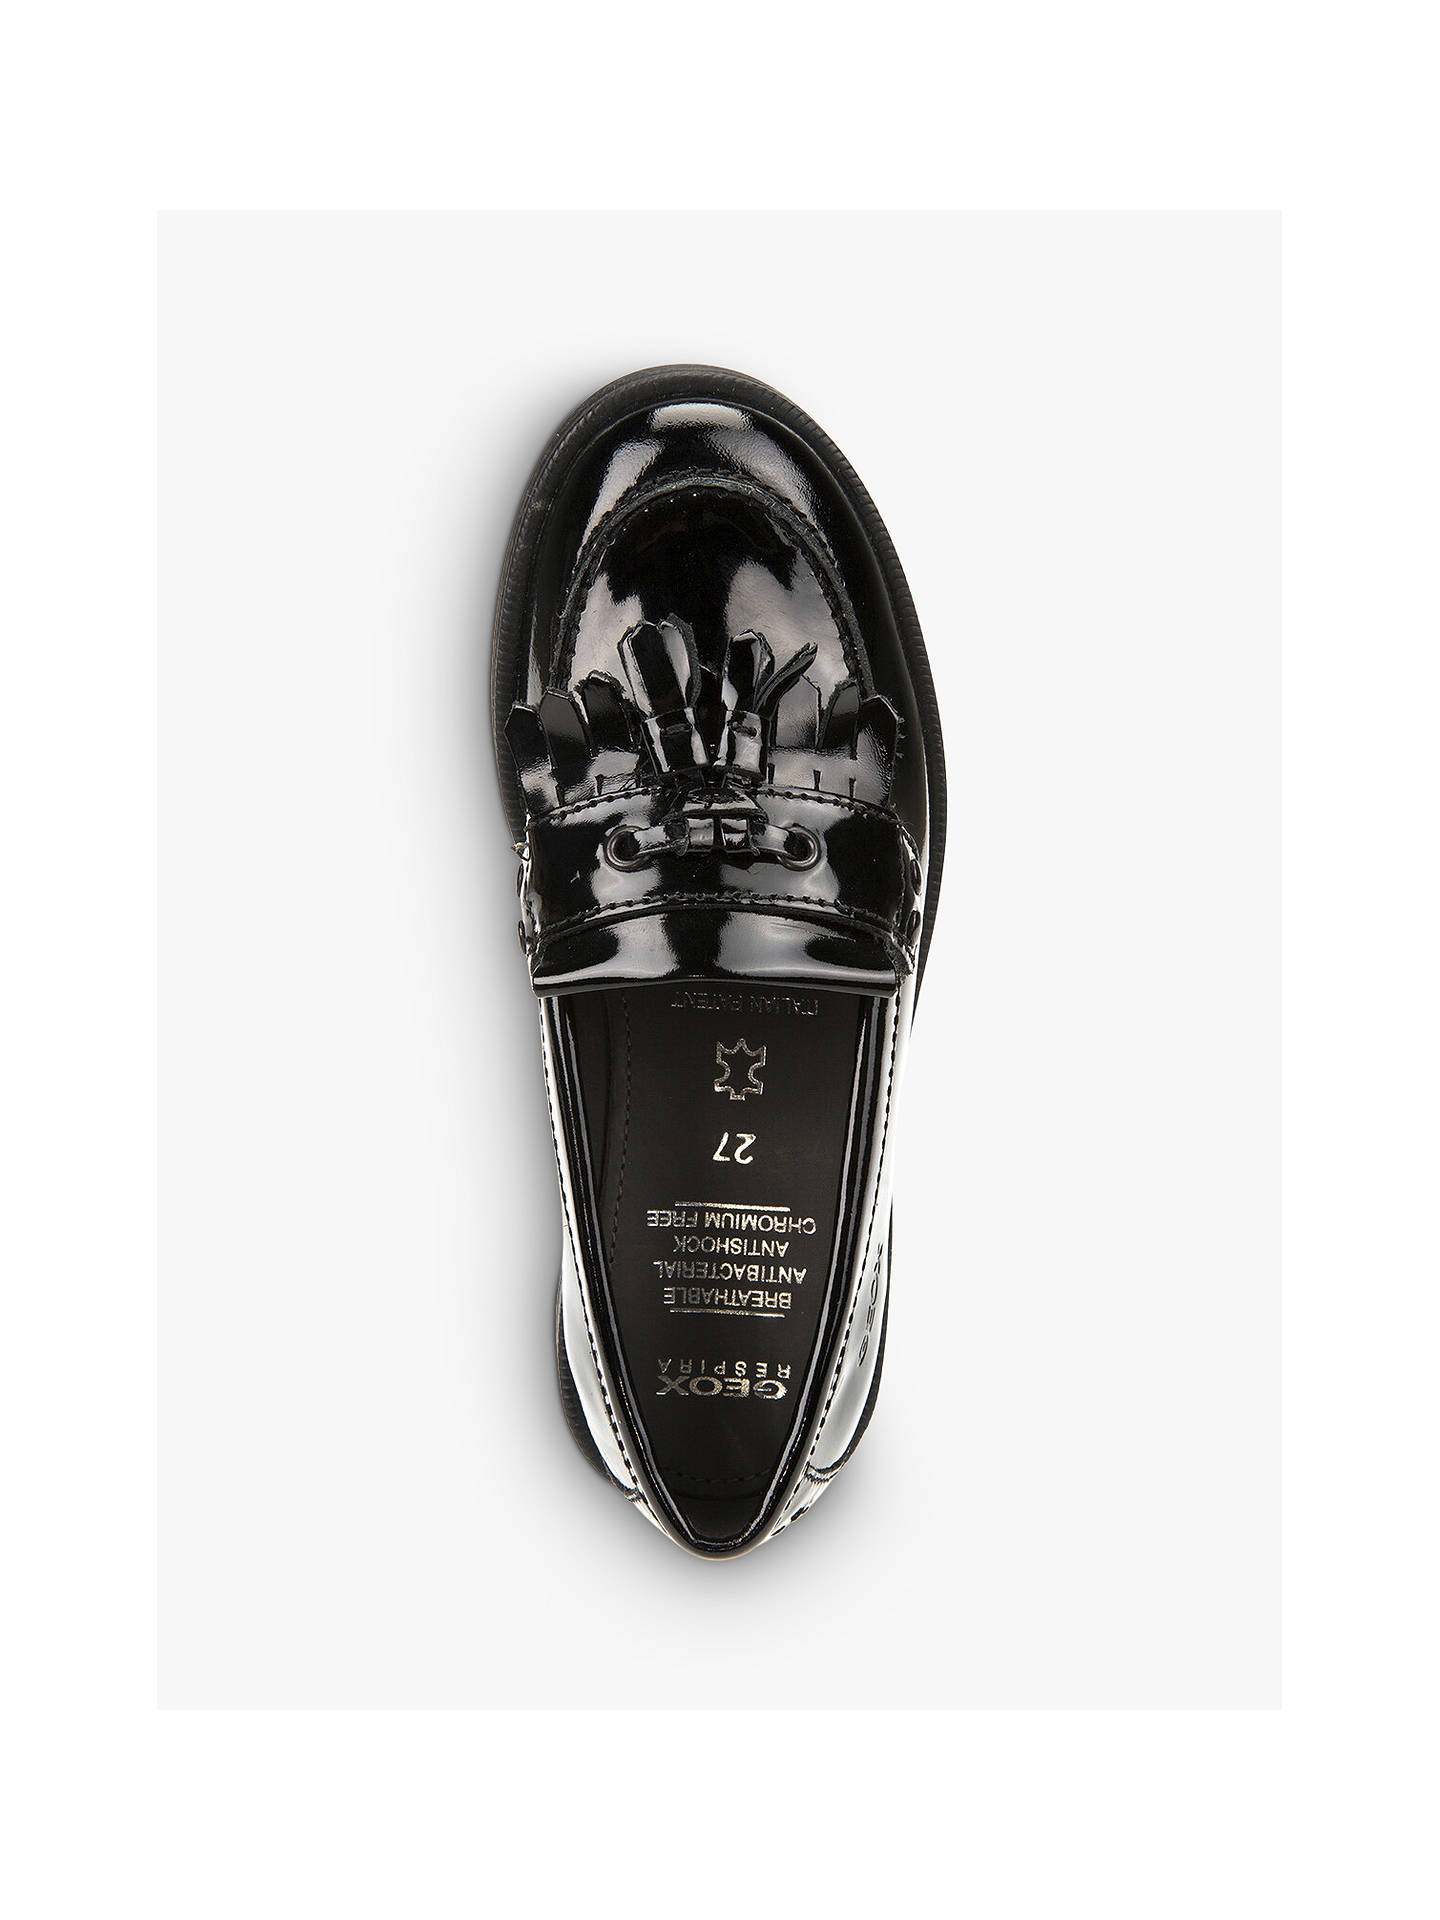 Geox Children's Agata Slip On Leather Loafers, Patent Black